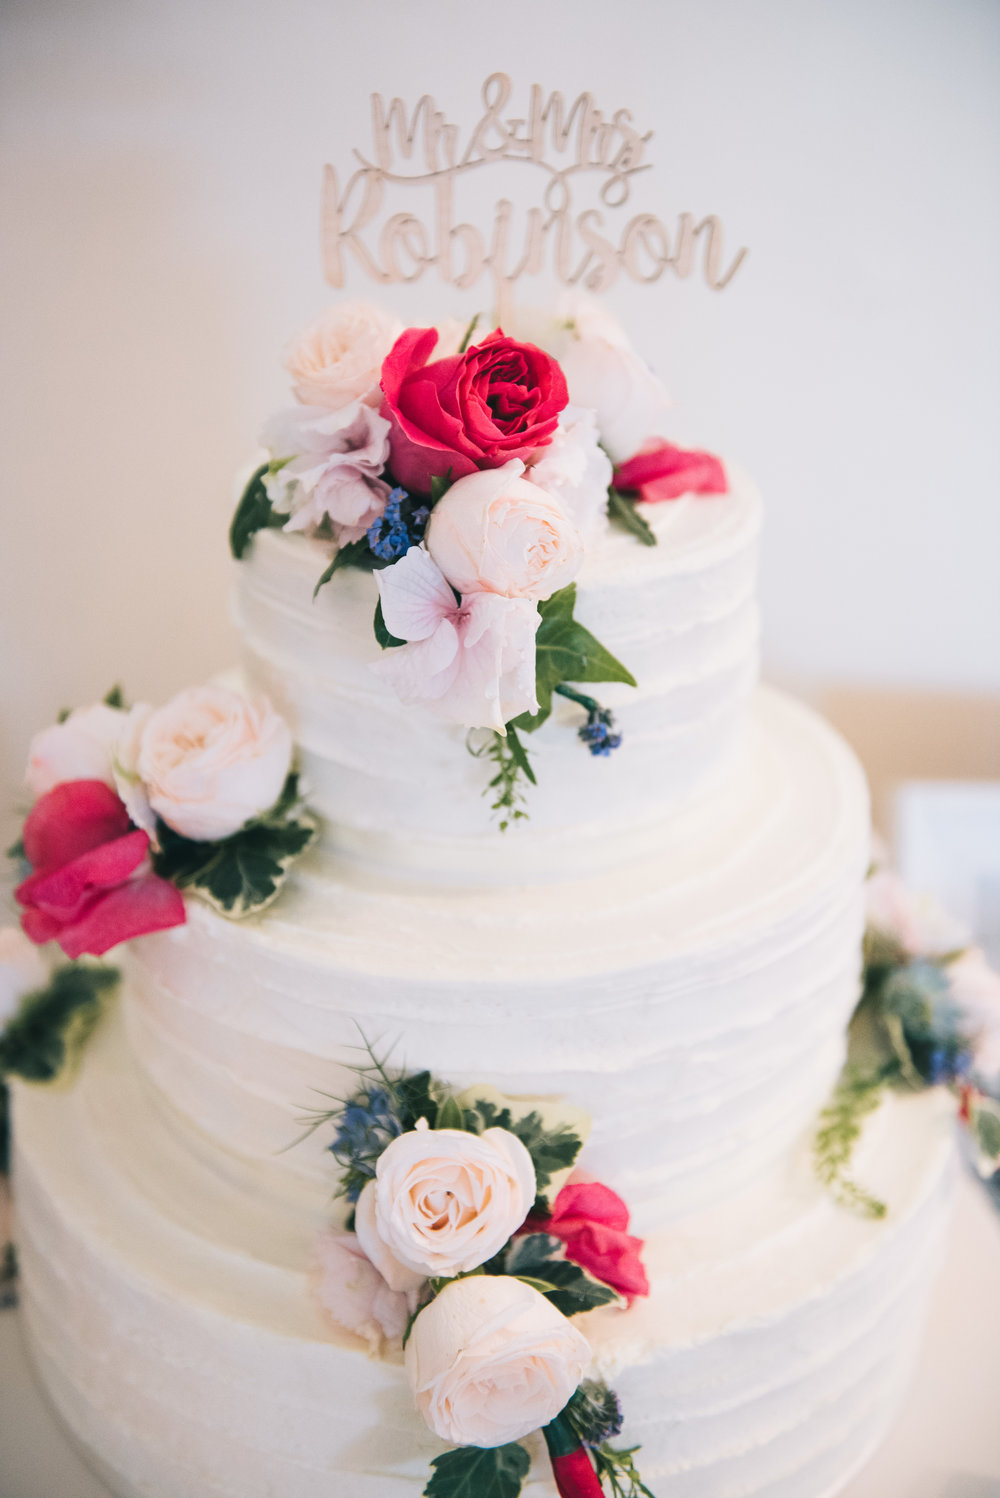 The wedding cake, Pink and white themed wedding.